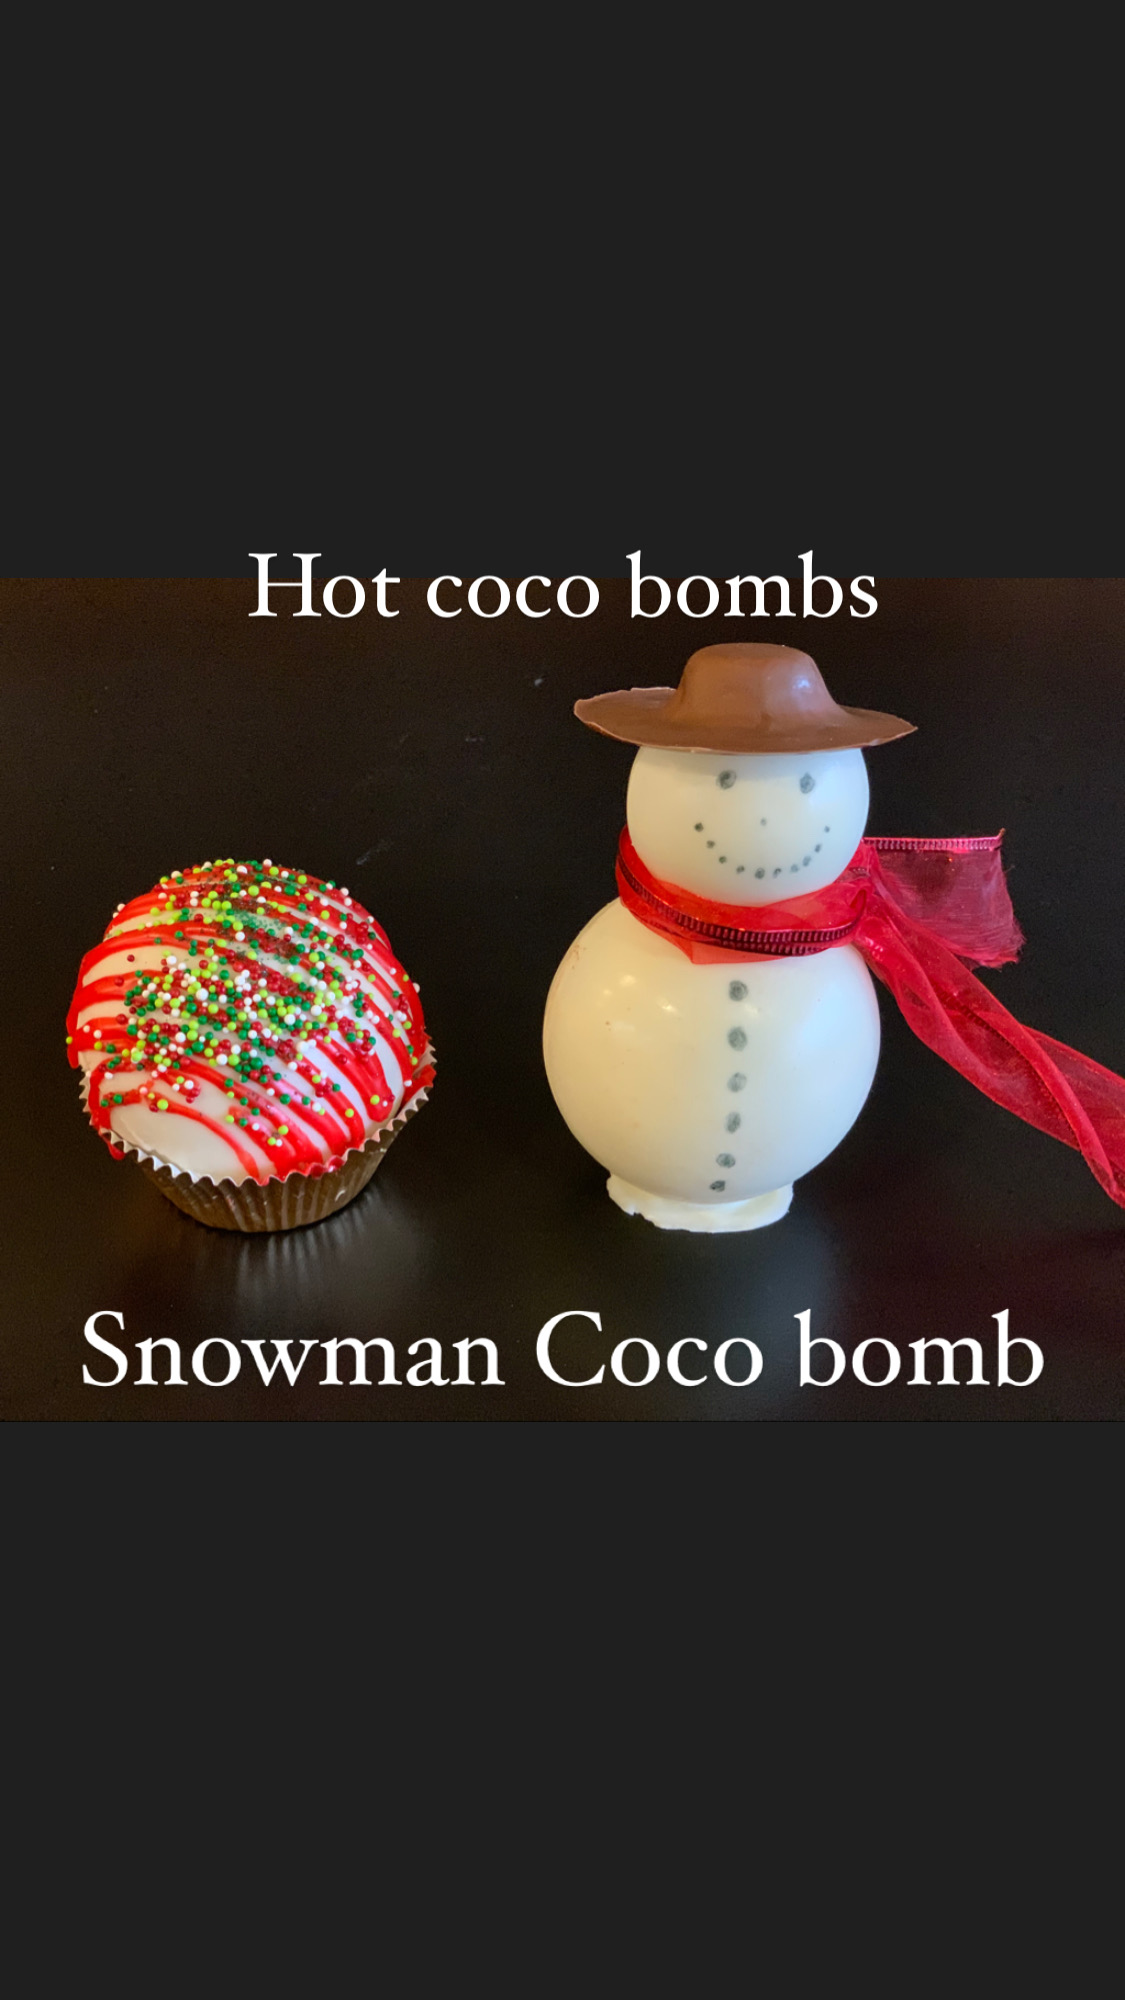 Hot coco bombs